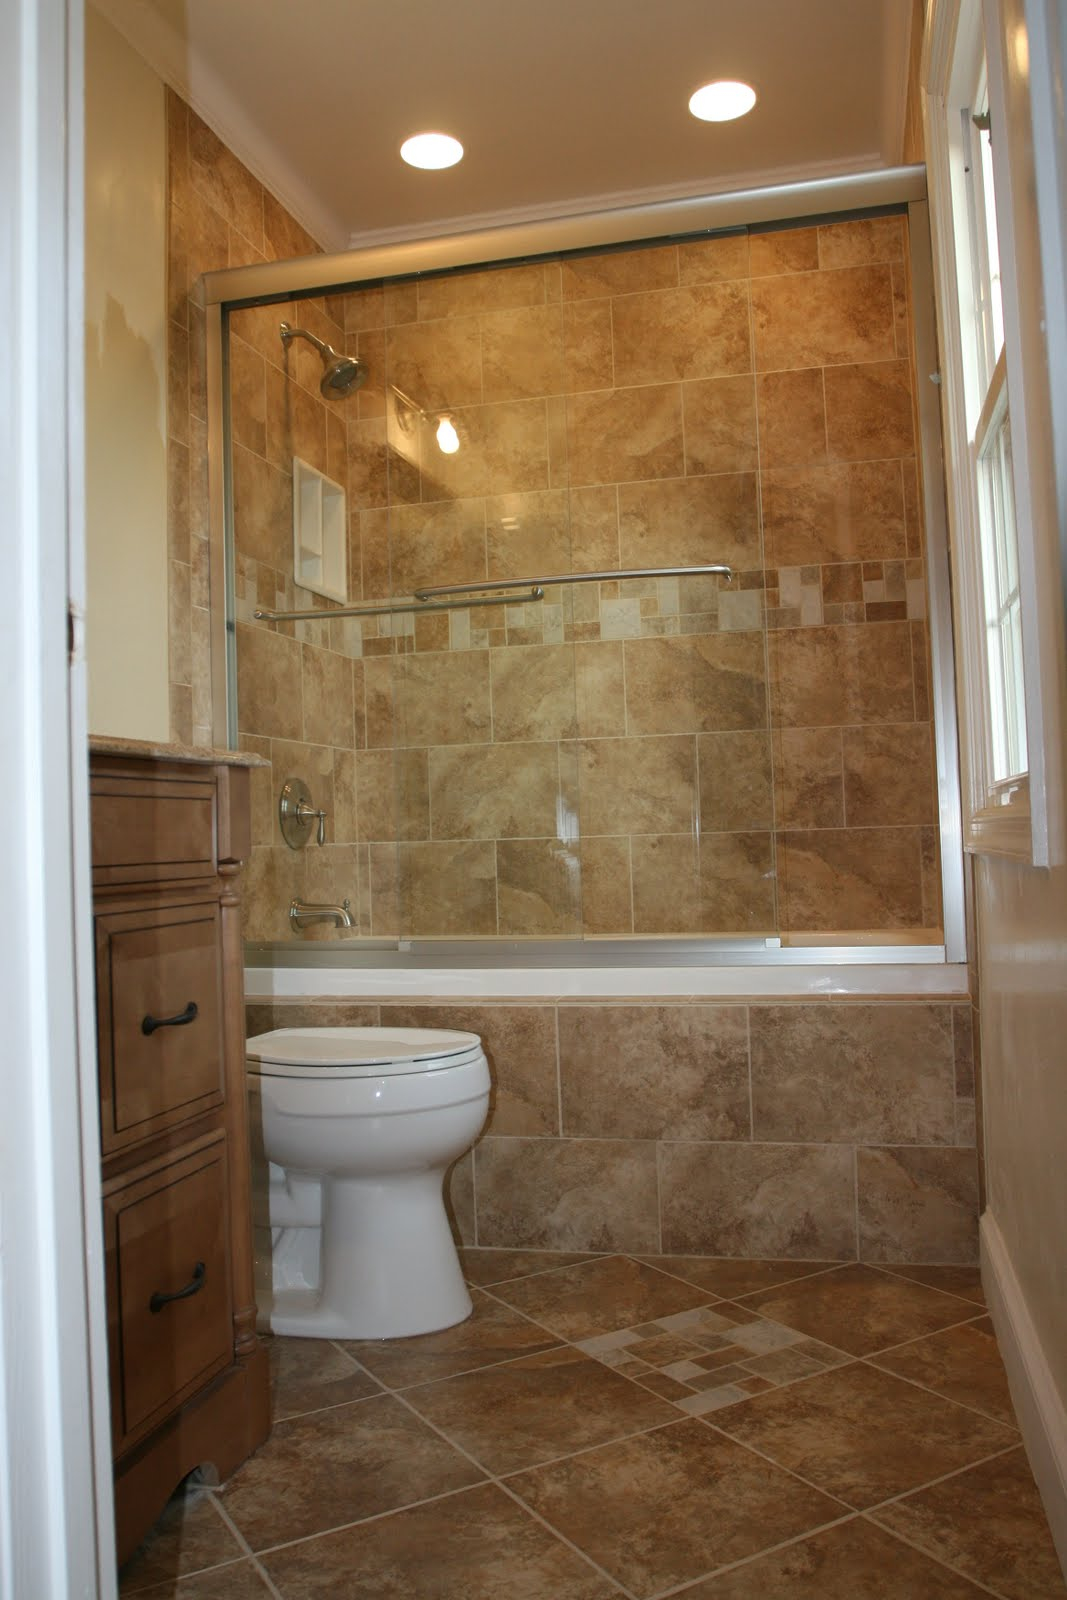 Bathroom remodeling design ideas tile shower niches for Bathroom tub tile design ideas